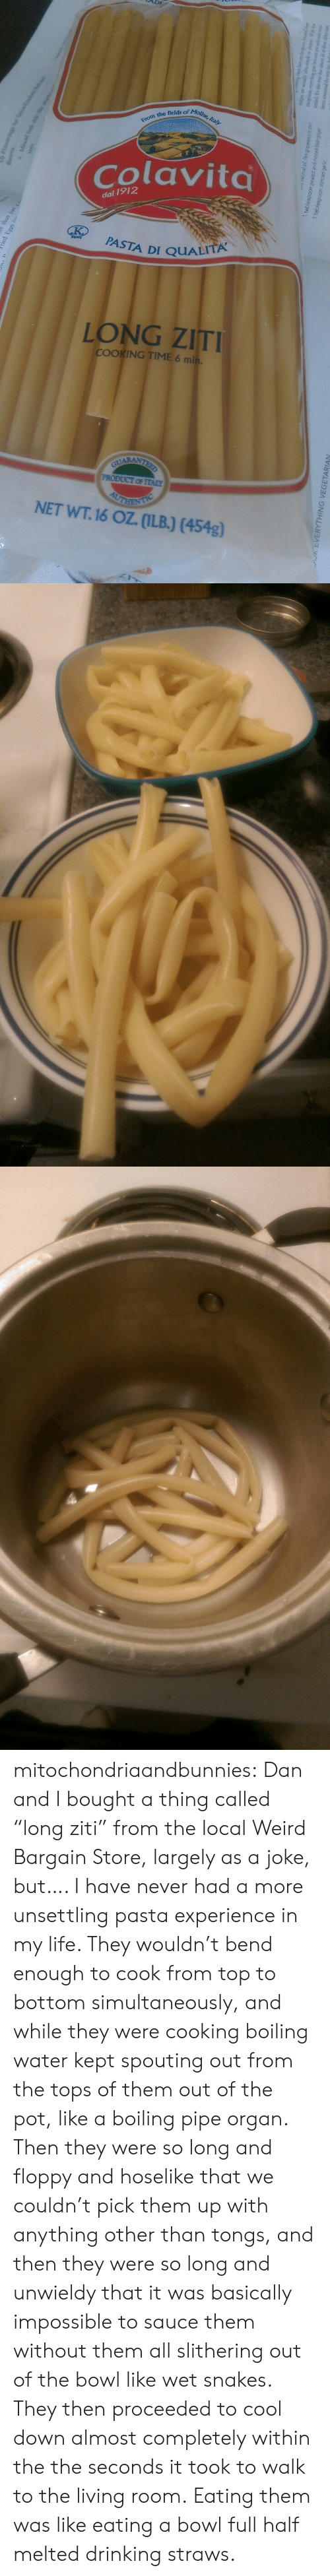 """unsettling: felds of Molse  flelds of  the  Colavita  dal 1912  PASTA DI QUALİA  LONG ZIT  COOKING TIME 6 mi  OF ITALY  NET WT. 16 OZ. (ILB) (454g)  o- mitochondriaandbunnies: Dan and I bought a thing called """"long ziti"""" from the local Weird Bargain Store, largely as a joke,  but…. I have never had a more unsettling pasta experience in my life. They wouldn't bend enough to cook from top to bottom simultaneously, and while they were cooking boiling water kept spouting out from the tops of them out of the pot, like a boiling pipe organ.  Then they were so long and floppy and hoselike that we couldn't pick them up with anything other than tongs, and then they were so long and unwieldy that it was basically impossible to sauce them without them all slithering out of the bowl like wet snakes. They then proceeded to cool down almost completely within the the seconds it took to walk to the living room.  Eating them was like eating a bowl full half melted drinking straws."""